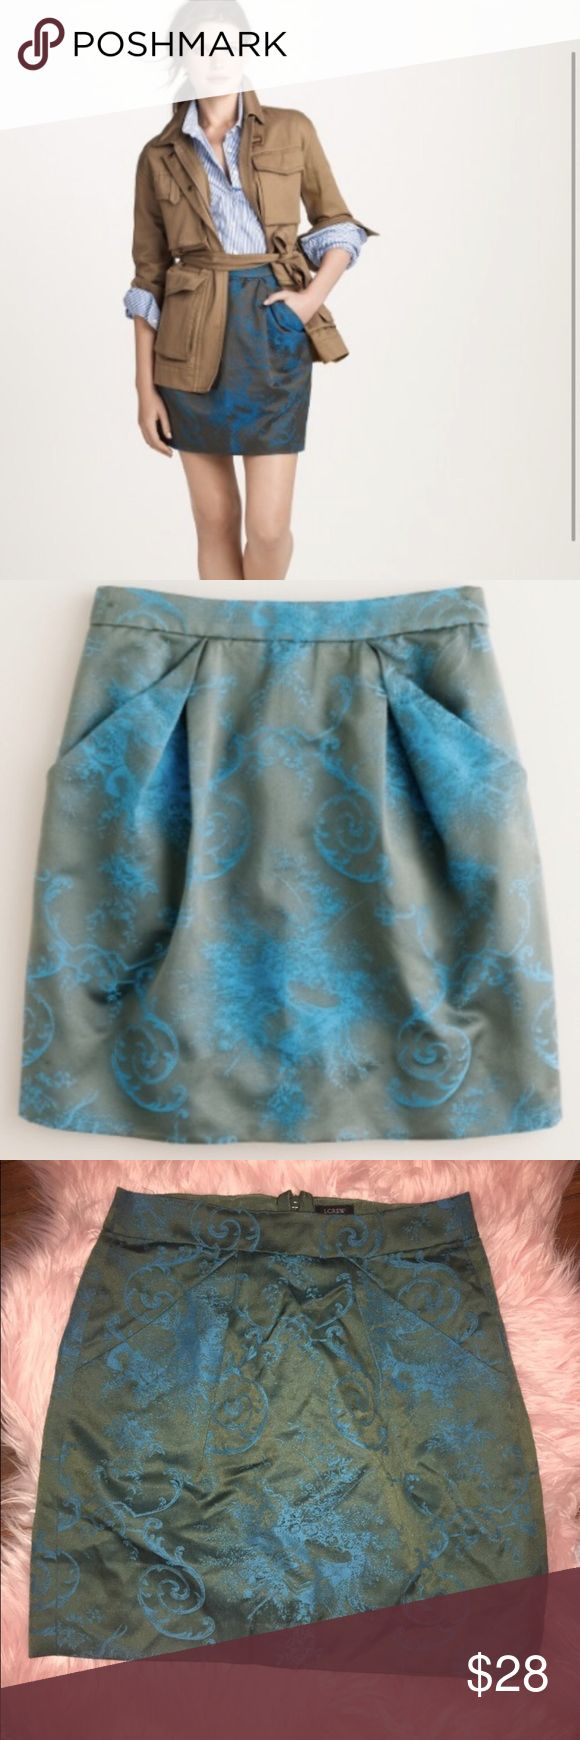 J Crew toile jacquard origami miniskirt Sz 2 sale! This J Crew Mini is perfect for summer to fall! A beautiful blue and green jacquard pattern and mid to lightweight fabric. Size 2. This was worn a few times and has a few wrinkles from storage but can be pressed or steamed out. Otherwise in perfect condition! Lowering price to make room in my closet! J. Crew Skirts Mini